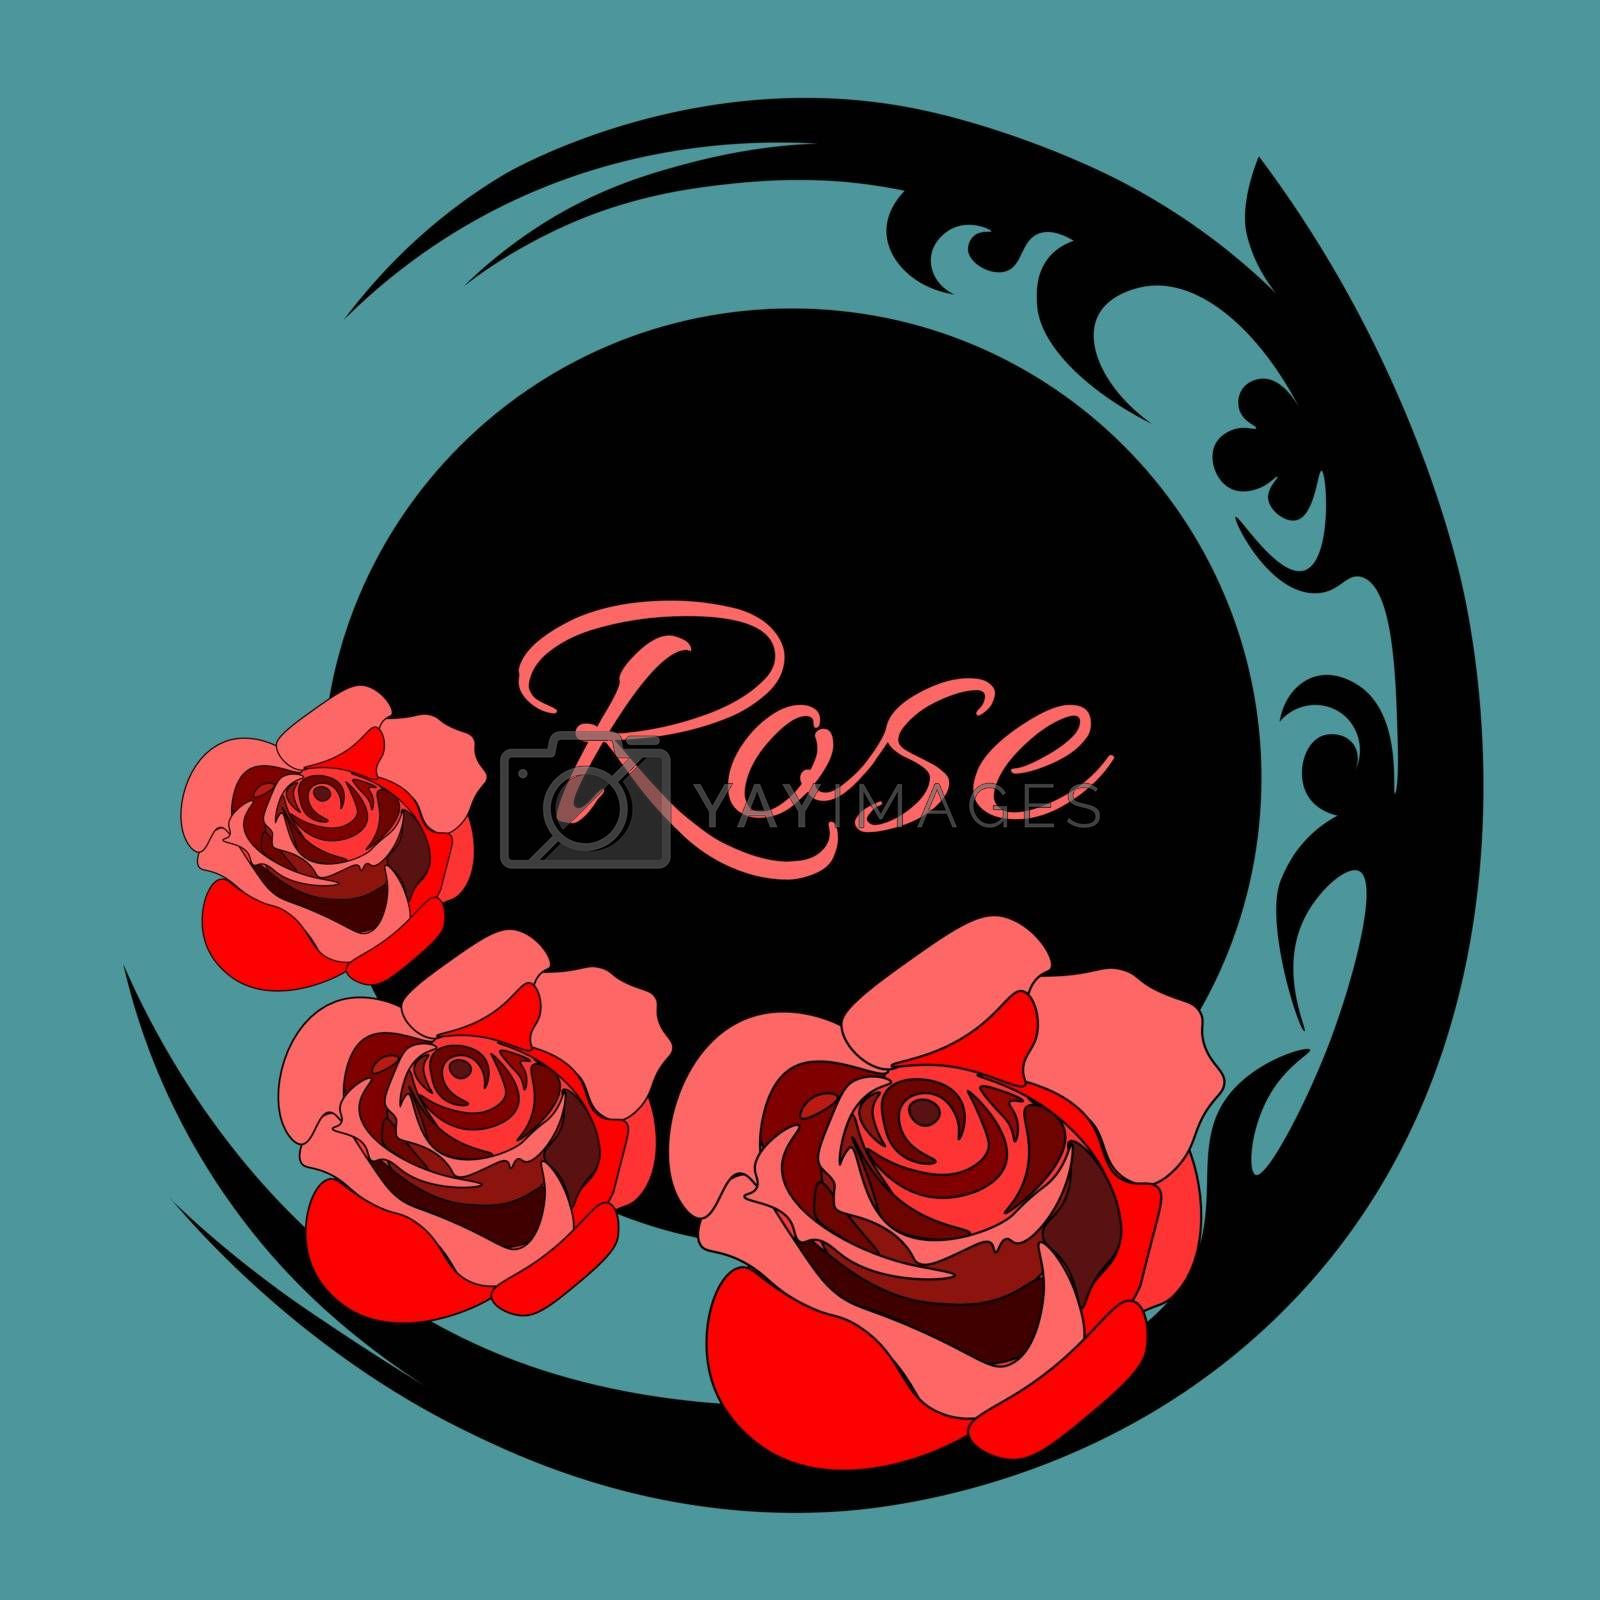 Three red roses by black ornate pattern, blue background, text `rose`